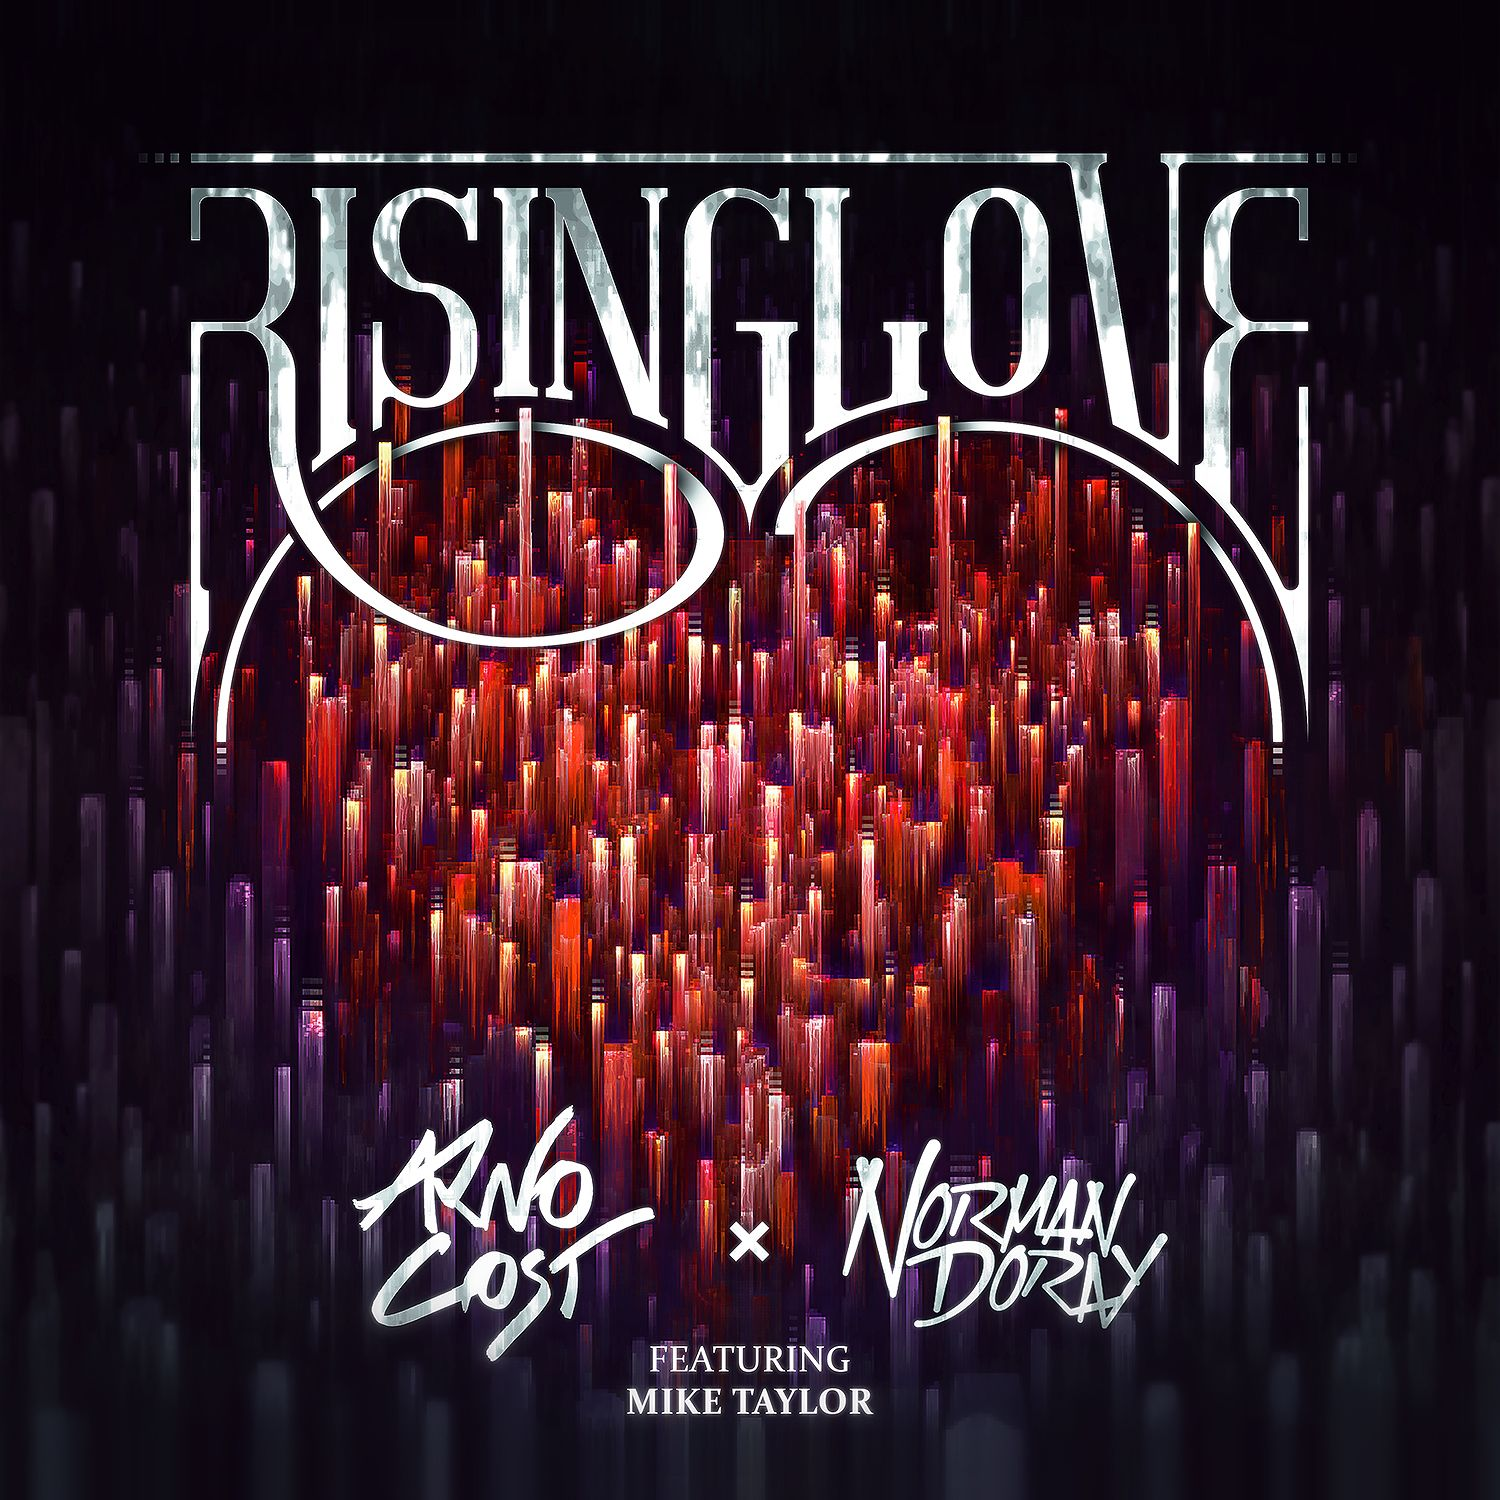 Arno Cost & Norman Doray, Mike Taylor – Rising Love (Acapella)